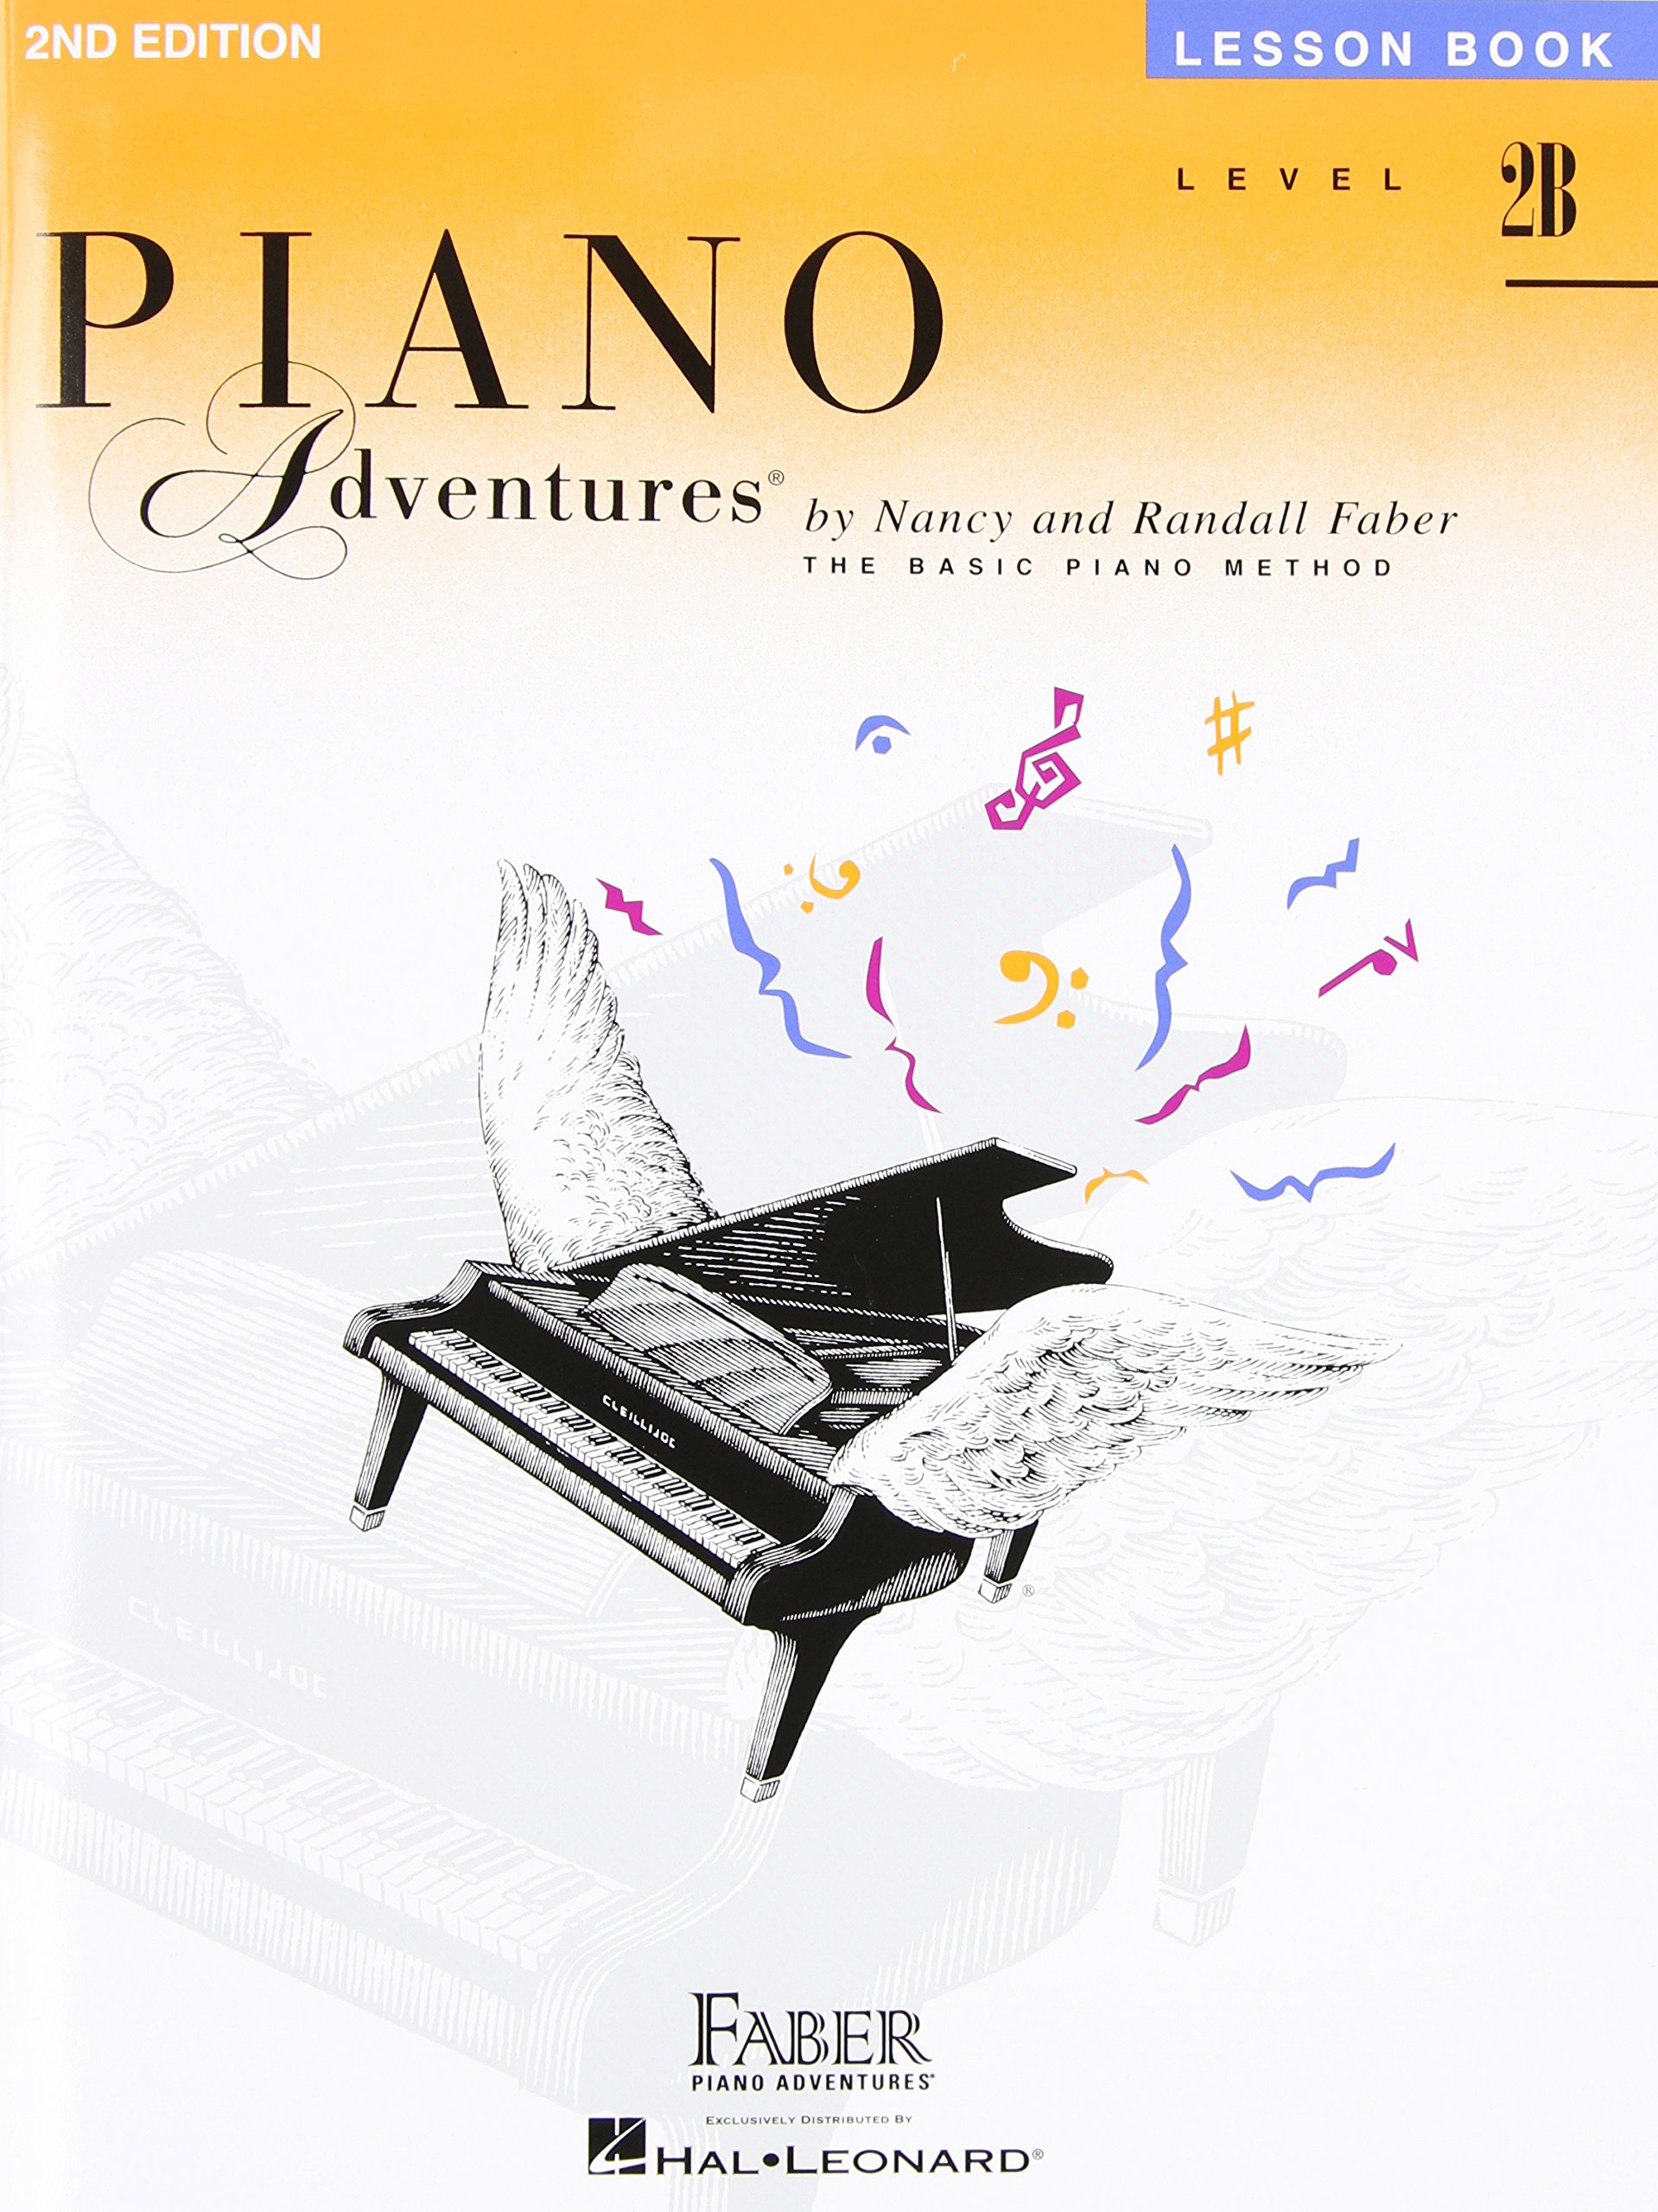 piano adventures level 2b set and christmas book 5 book set lesson theory technique artistry performance christmas books